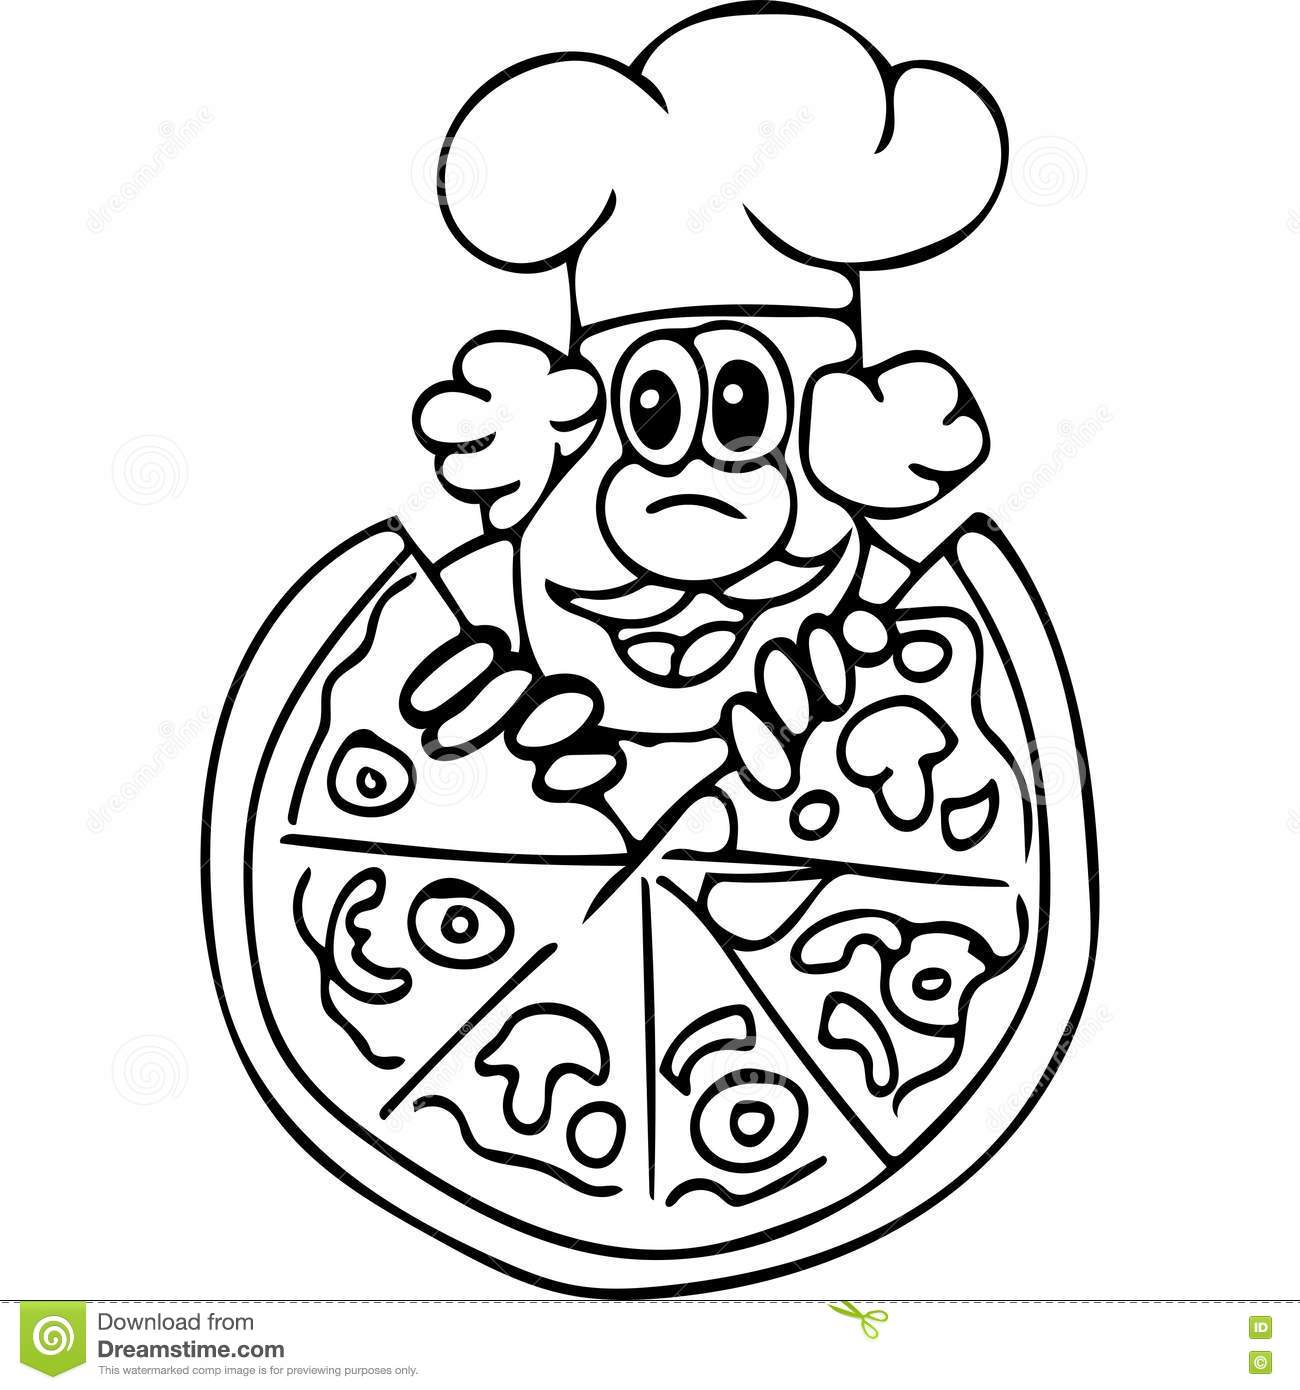 Sliced Pizza coloring page | Free Printable Coloring Pages | 1390x1300